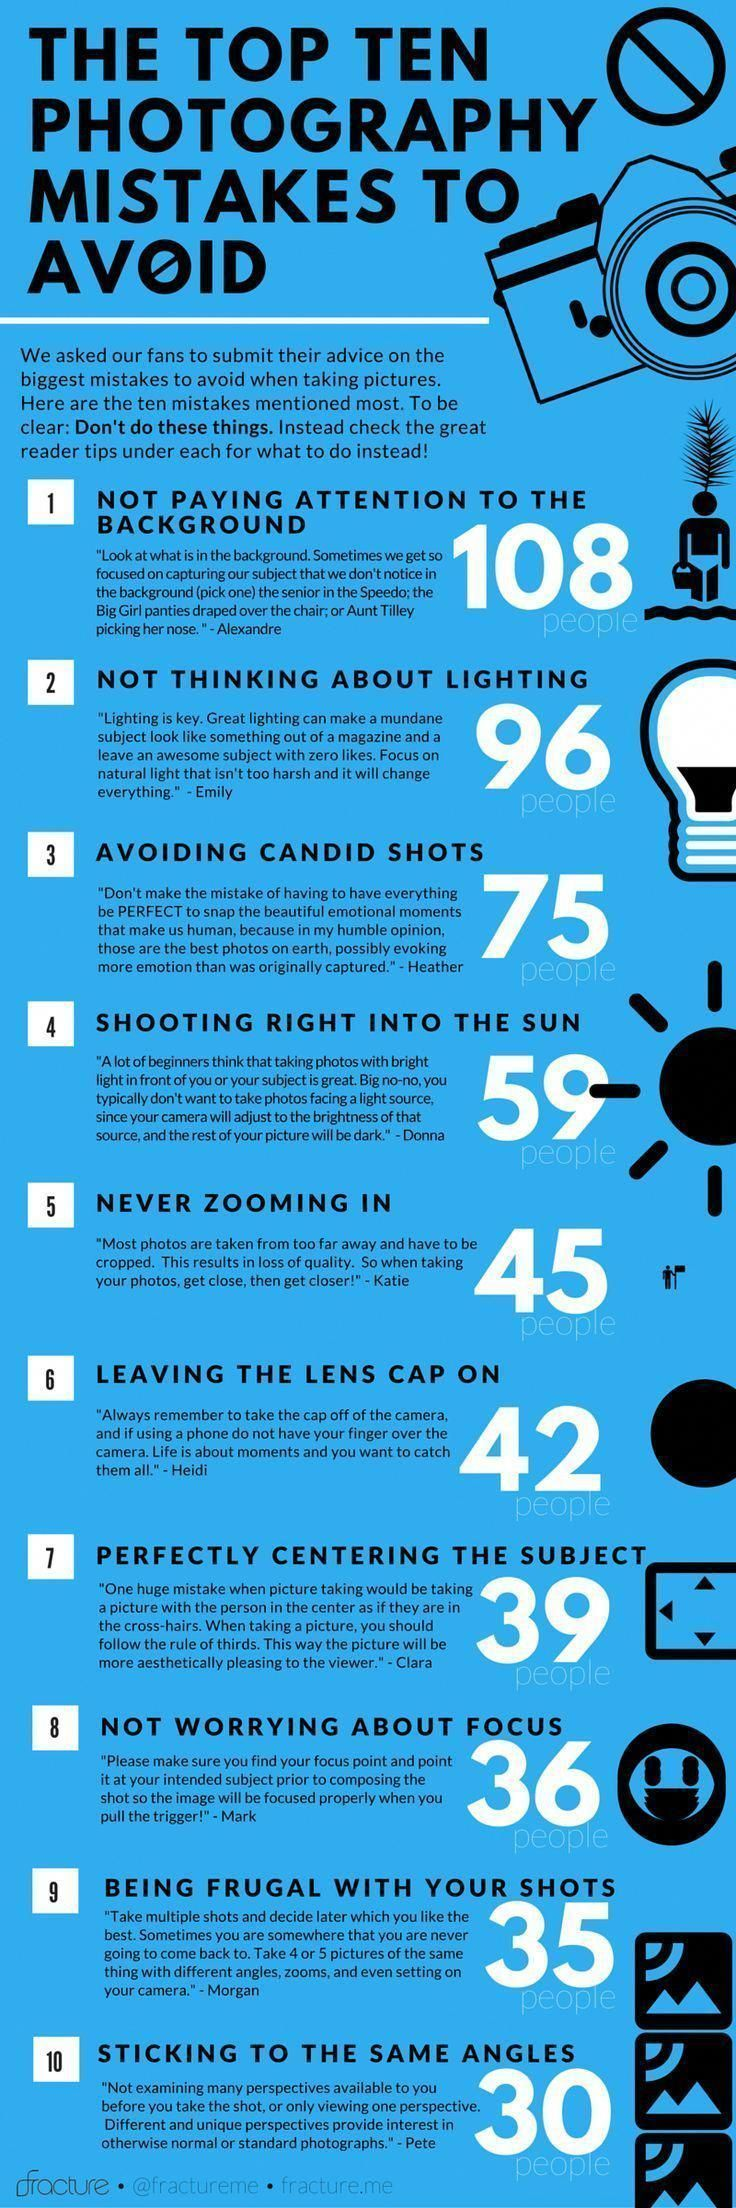 Fracture S Awesome Infographic Of Photography Mistakes To Avoid Plus 58 More Tips On The Site Photography Jobs Photography 101